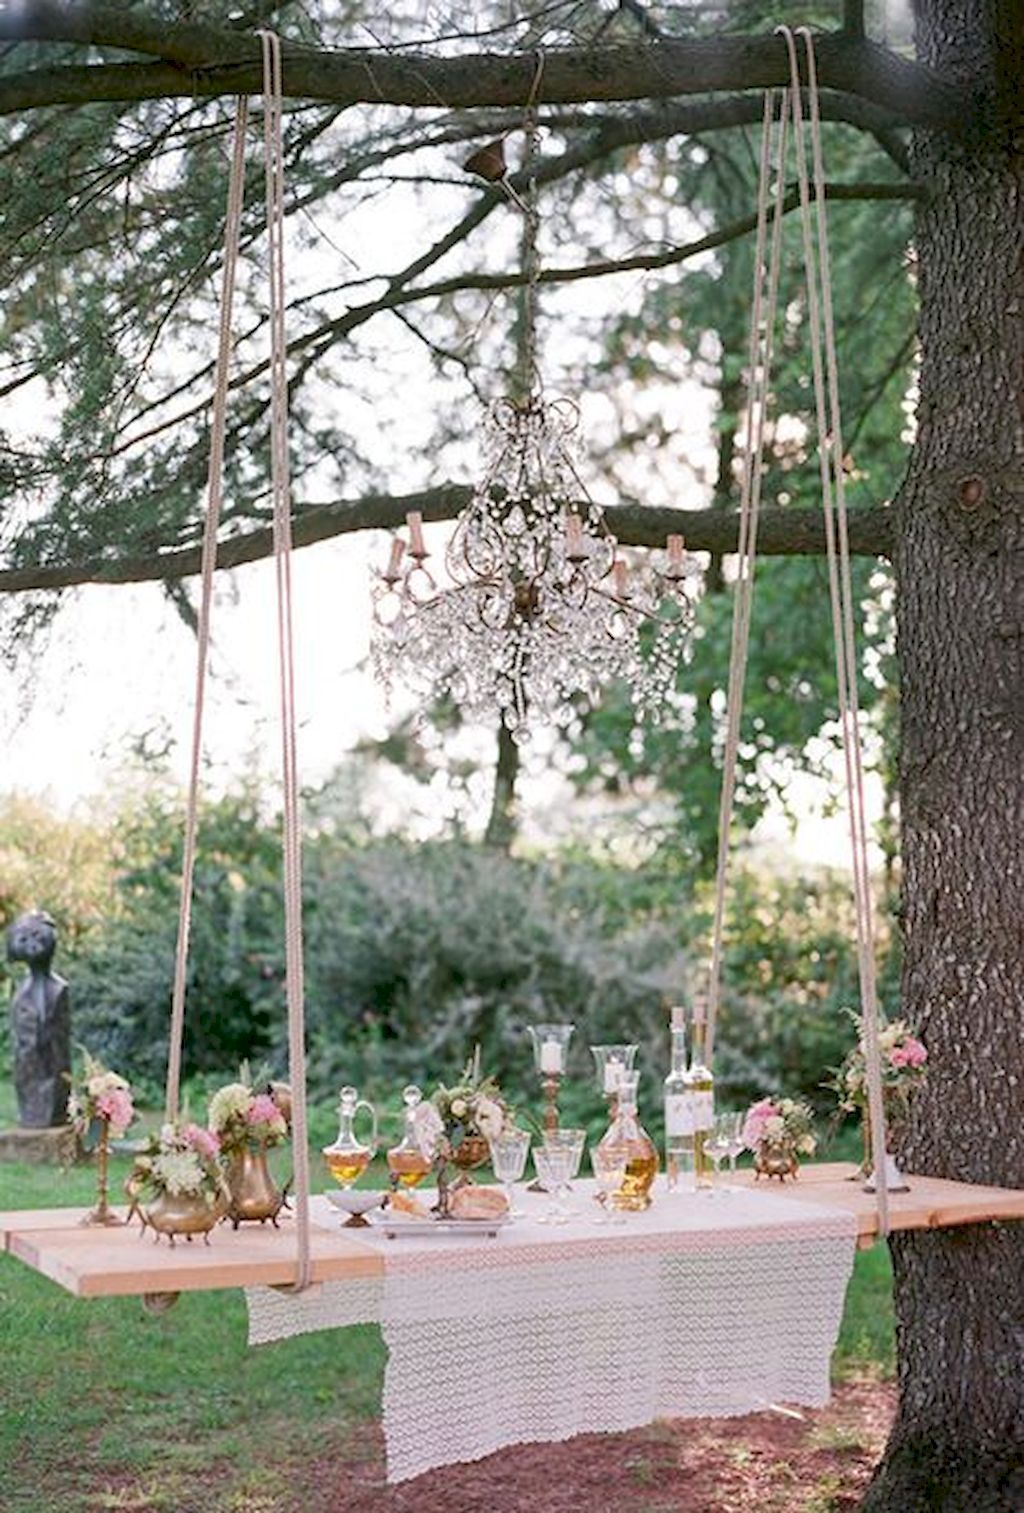 decor backyard ideas wedding g decorations outside venues garden